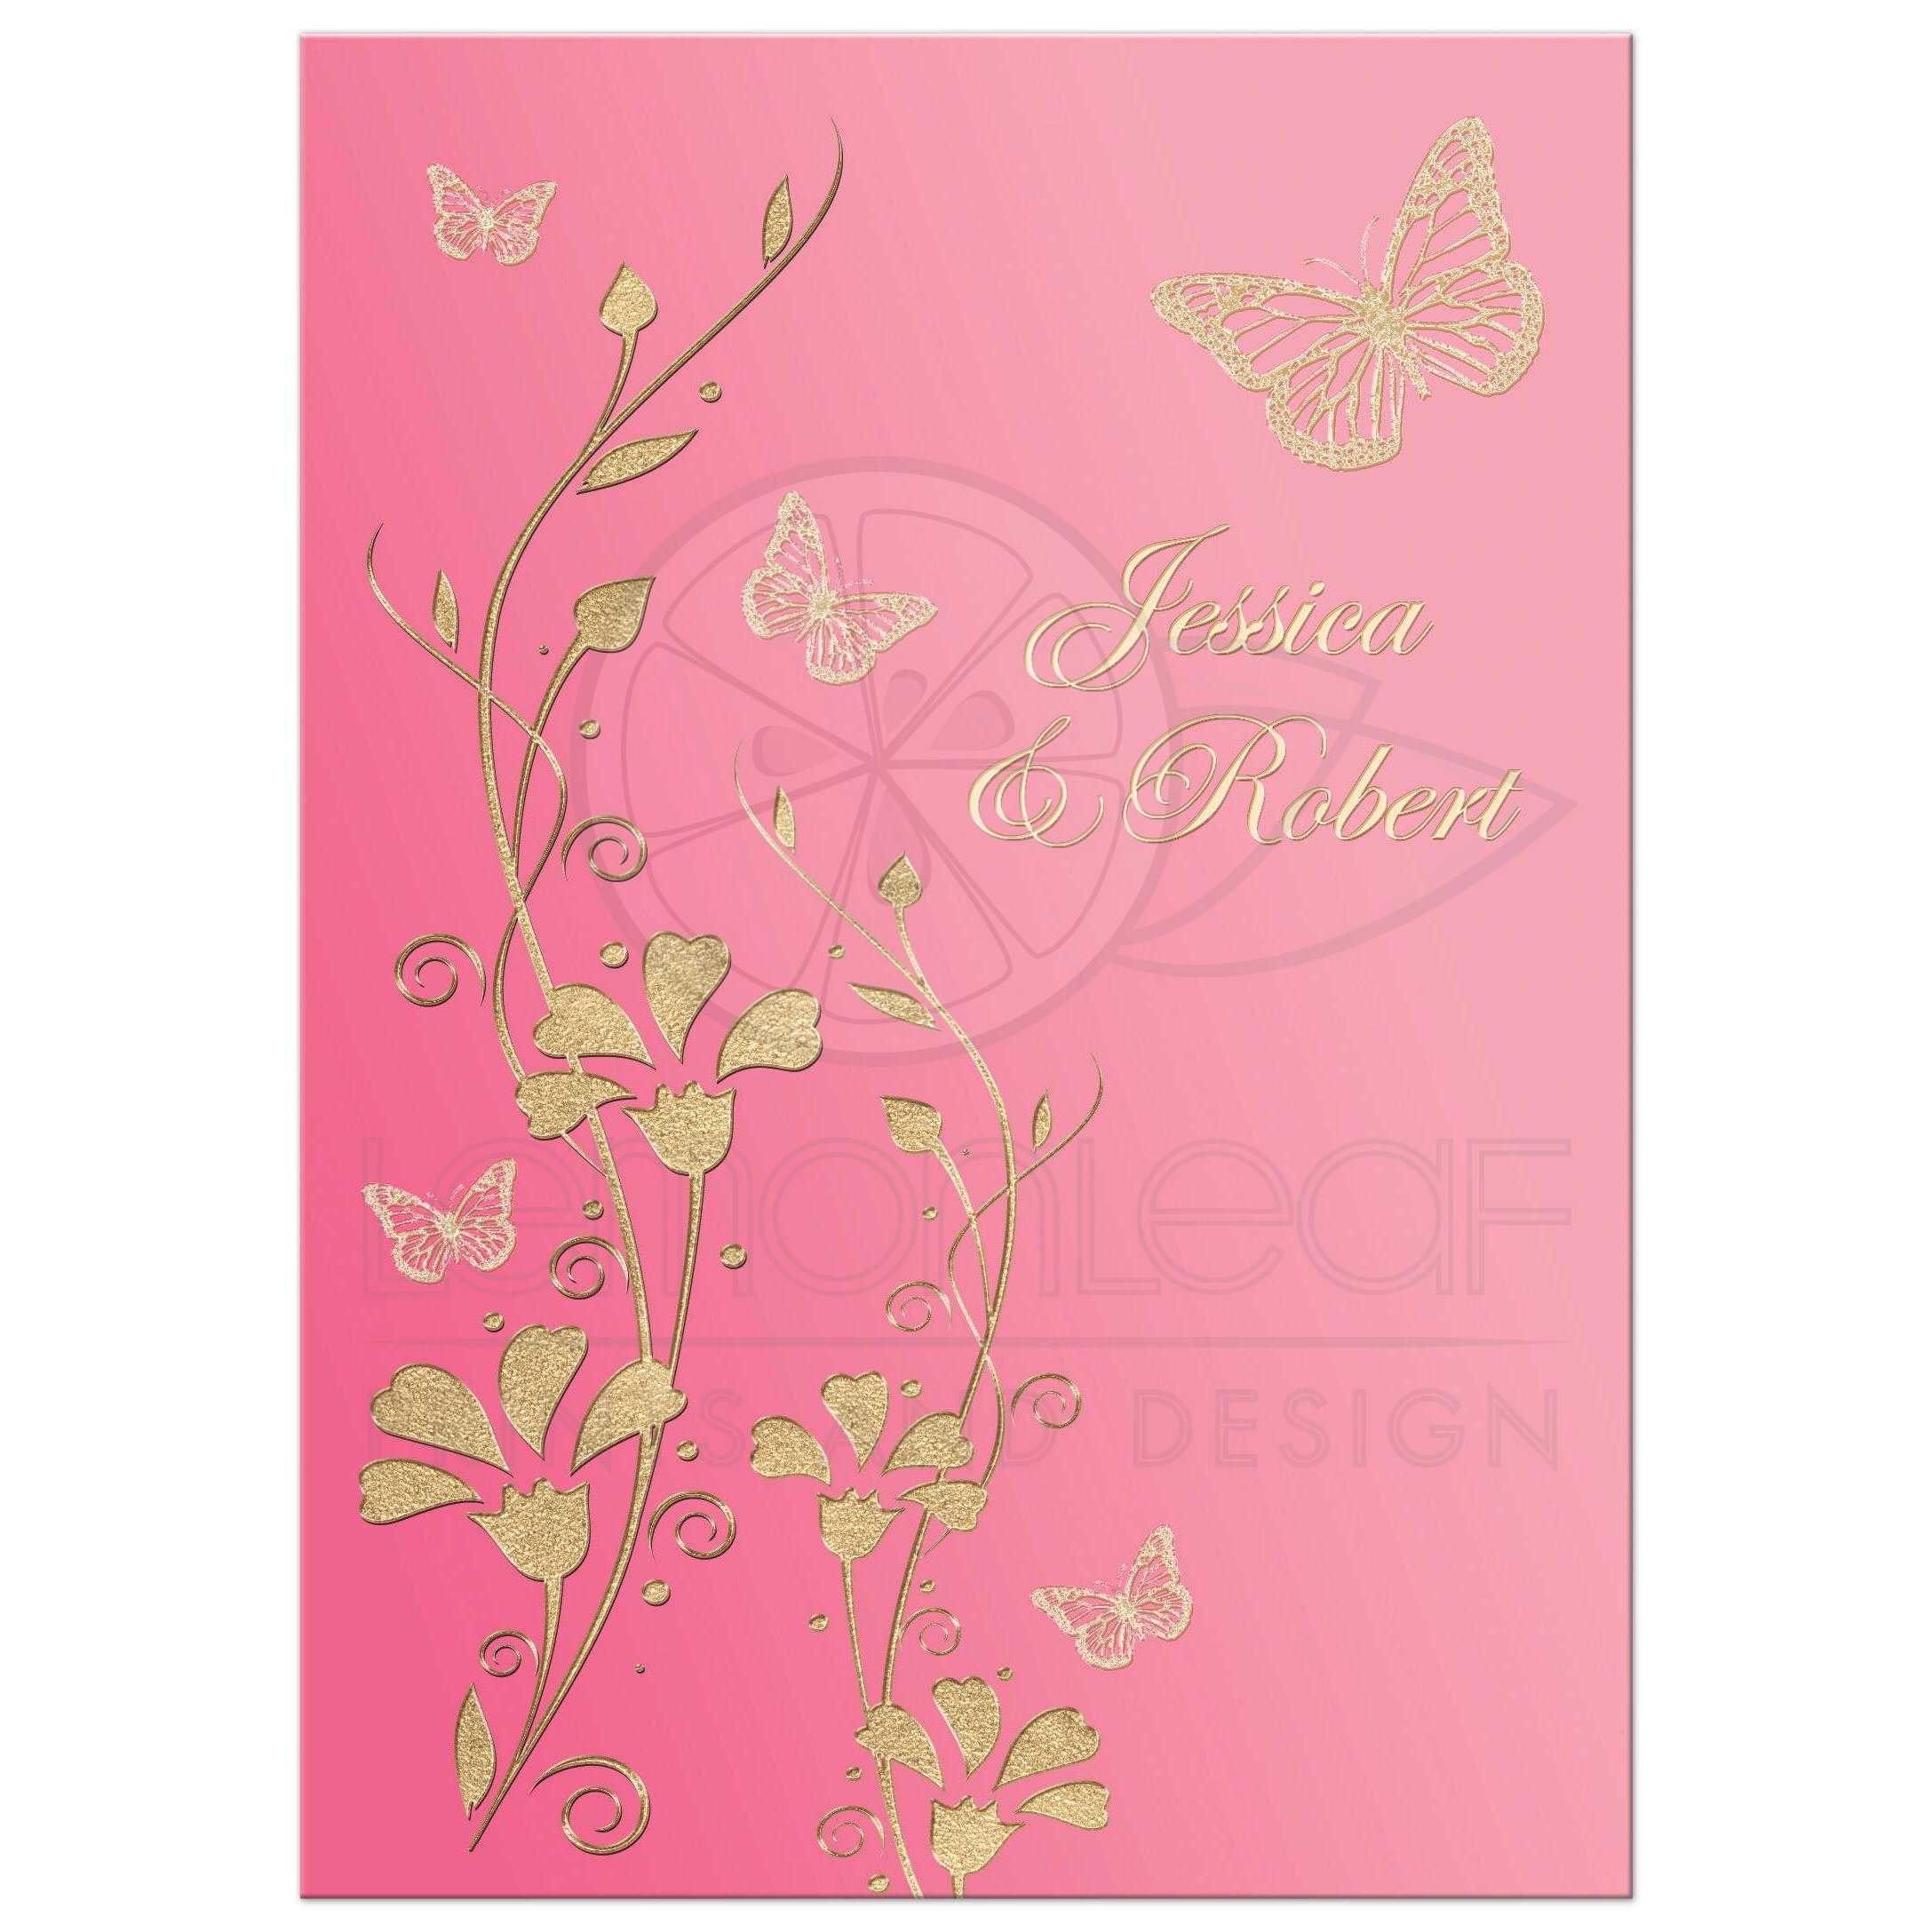 Wedding invitation blush pink rose pink champagne and faux gold great fuchsia blush pink champagne and gold floral wedding invitation with flowers and butterflies mightylinksfo